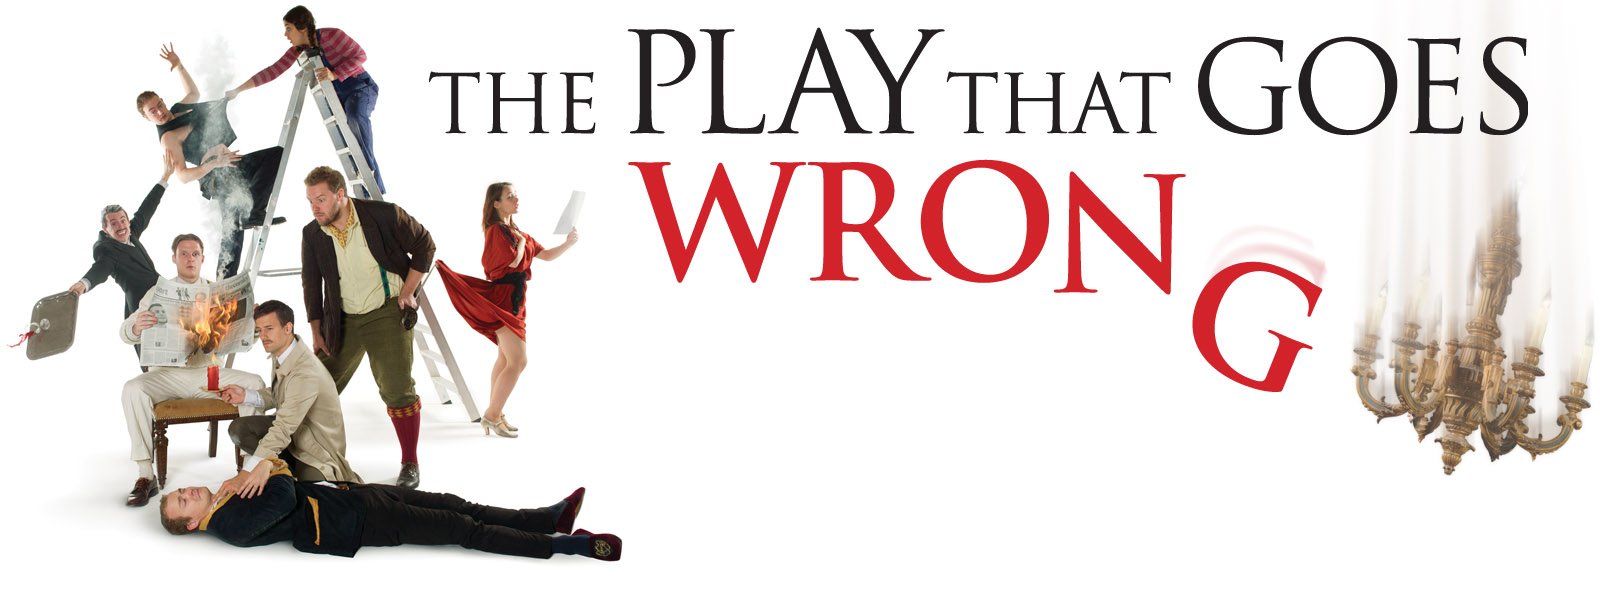 the play that goes wrong curve.jpg